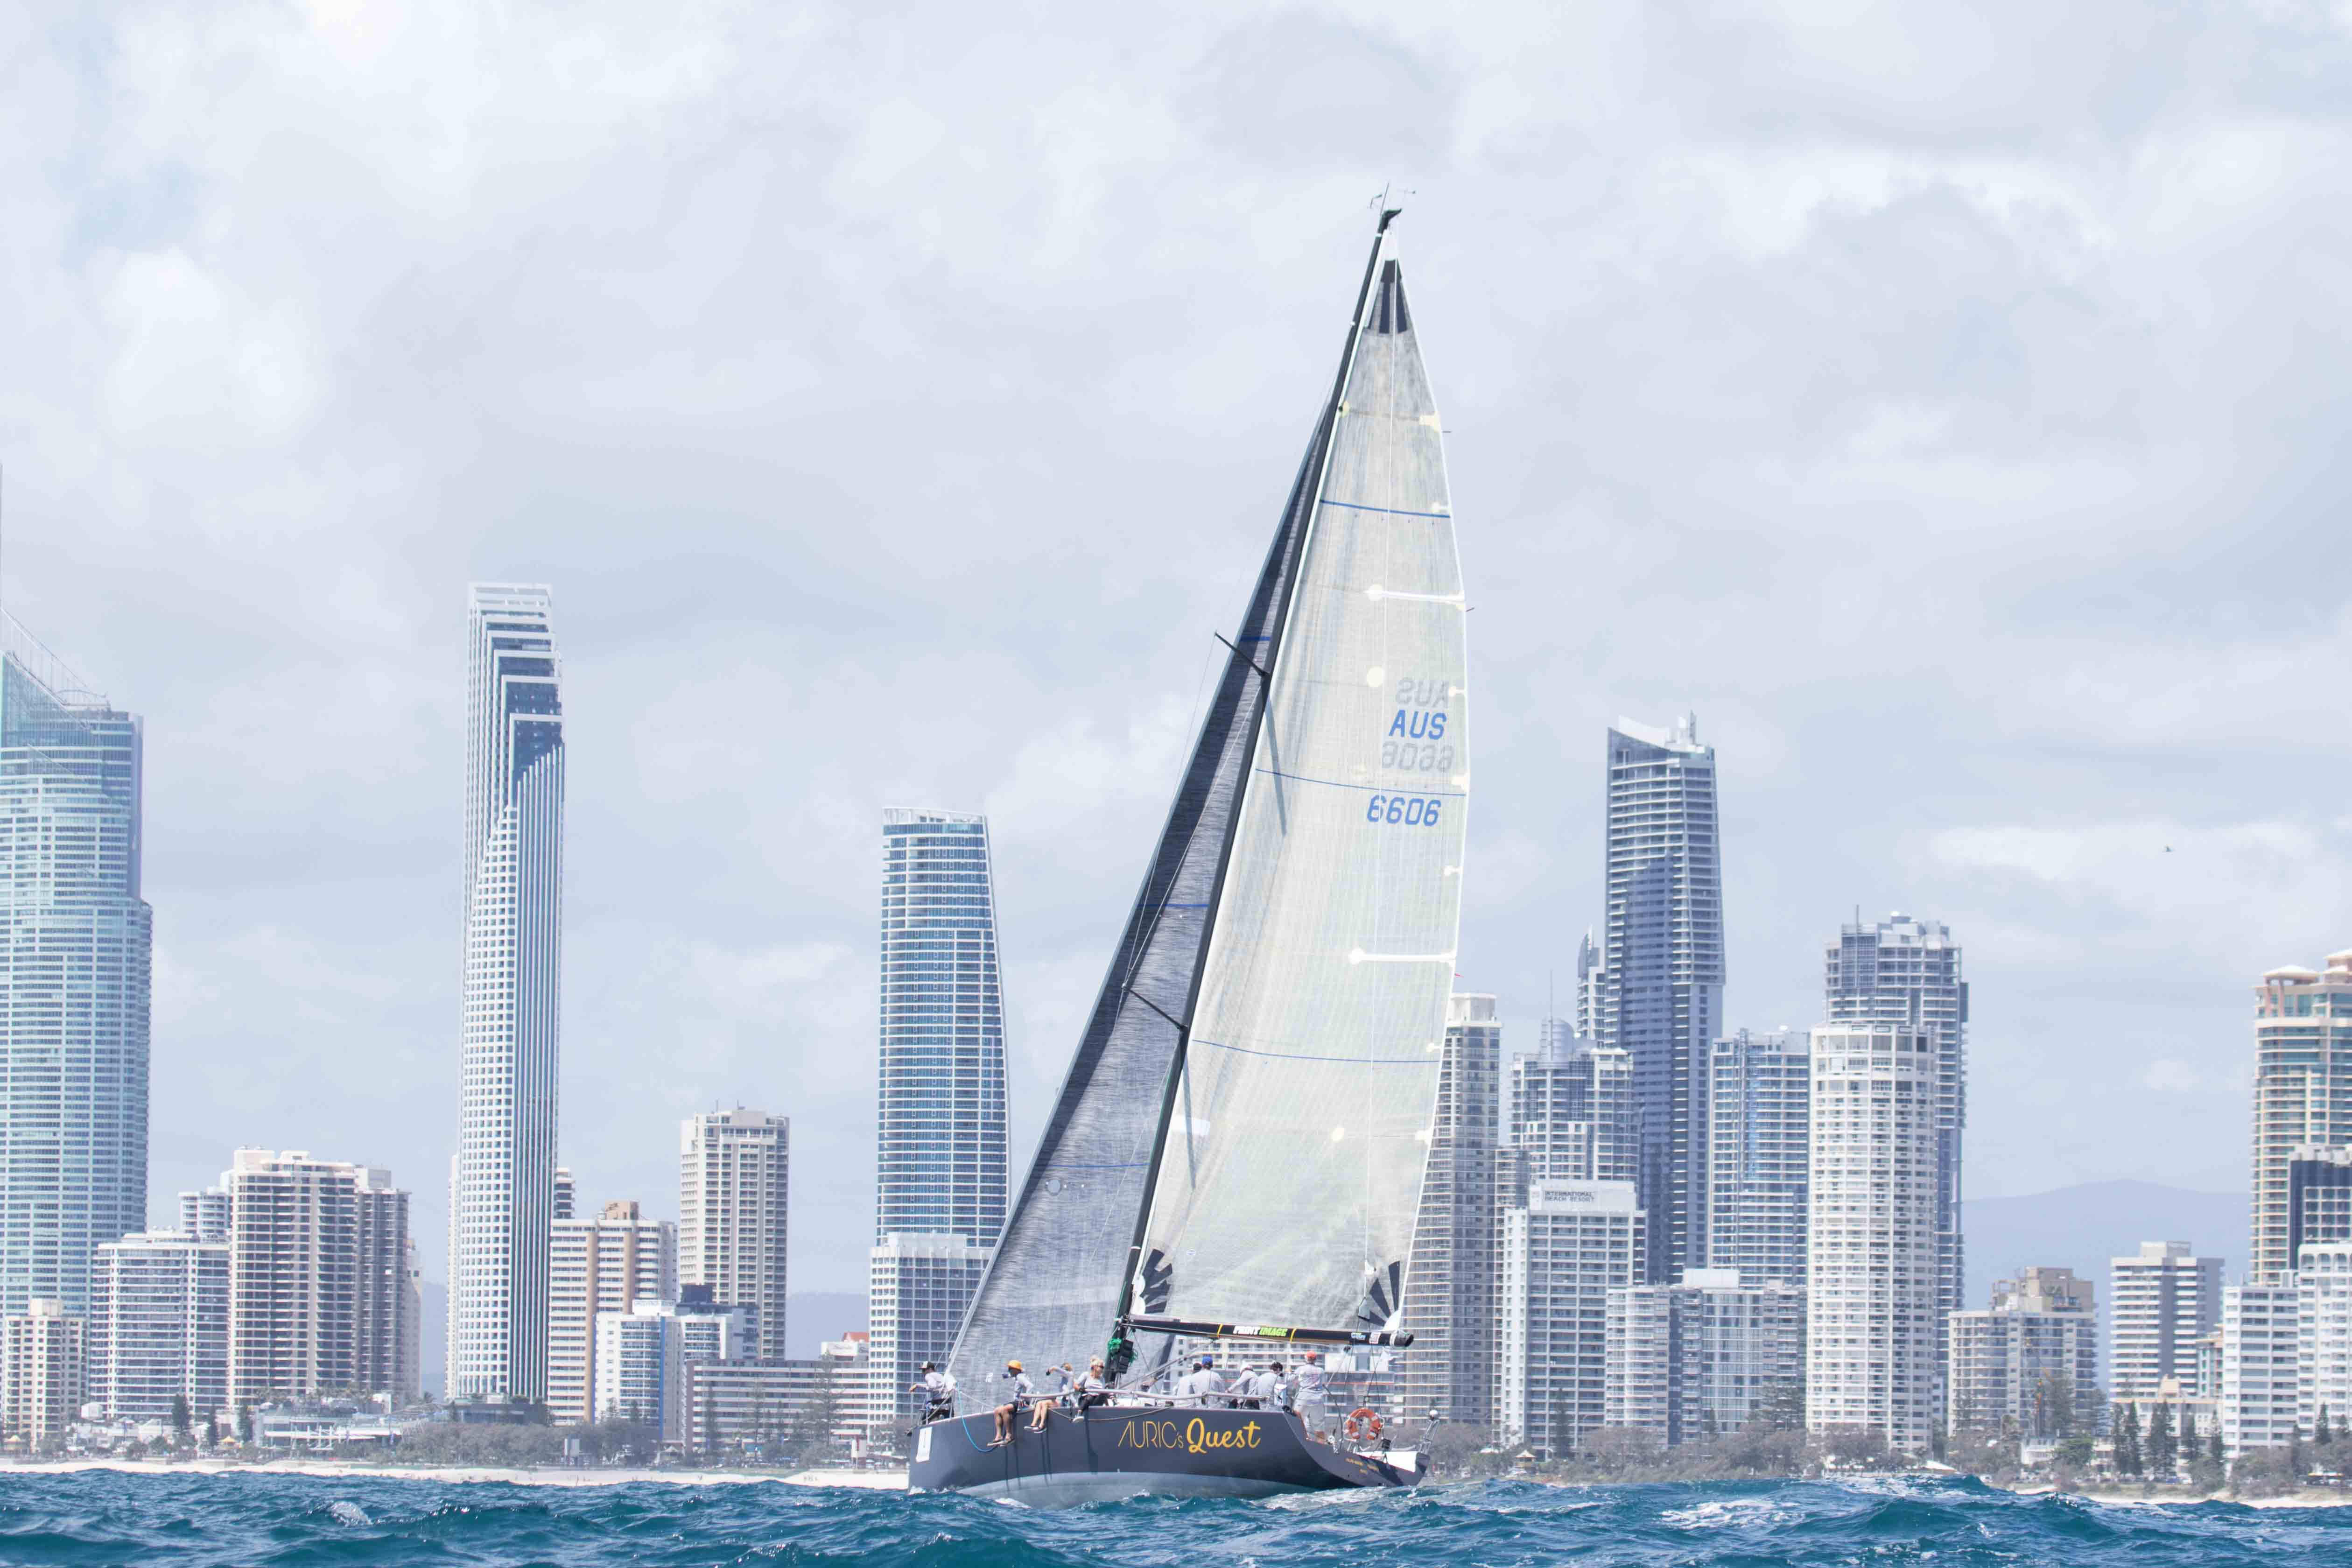 Fred Bestall's Auric's Quest, crowned Champion of the 2017 Bartercard Sail Paradise Regatta, IRC Division